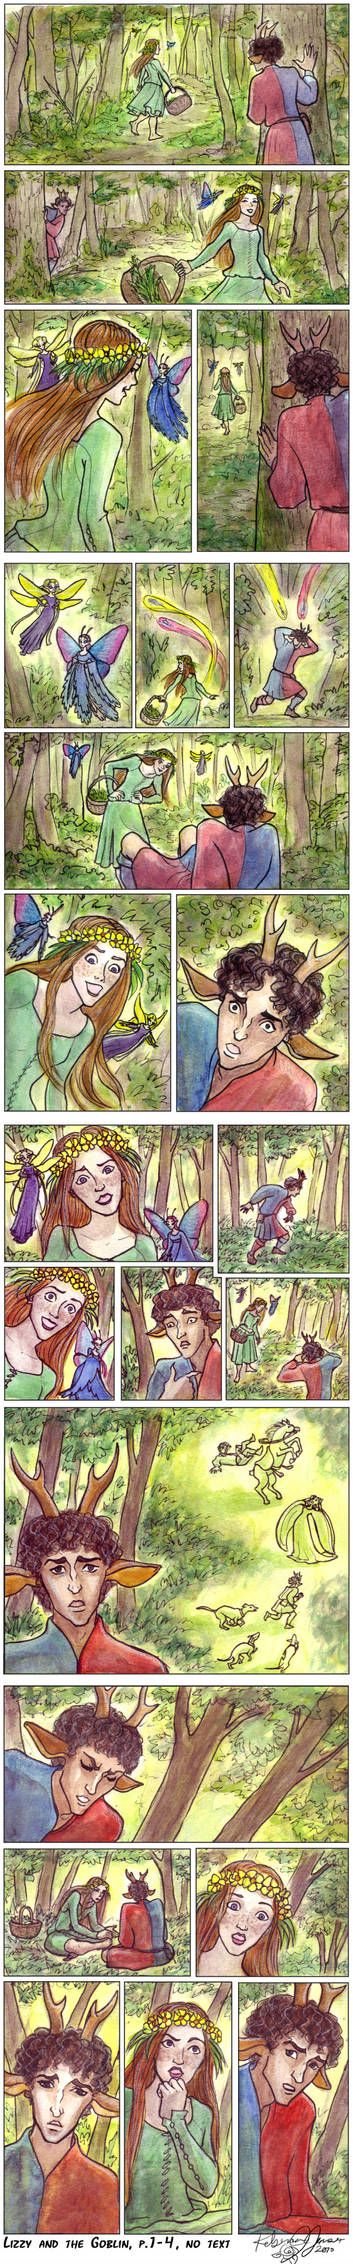 Lizzy and the Goblin, p.1-4